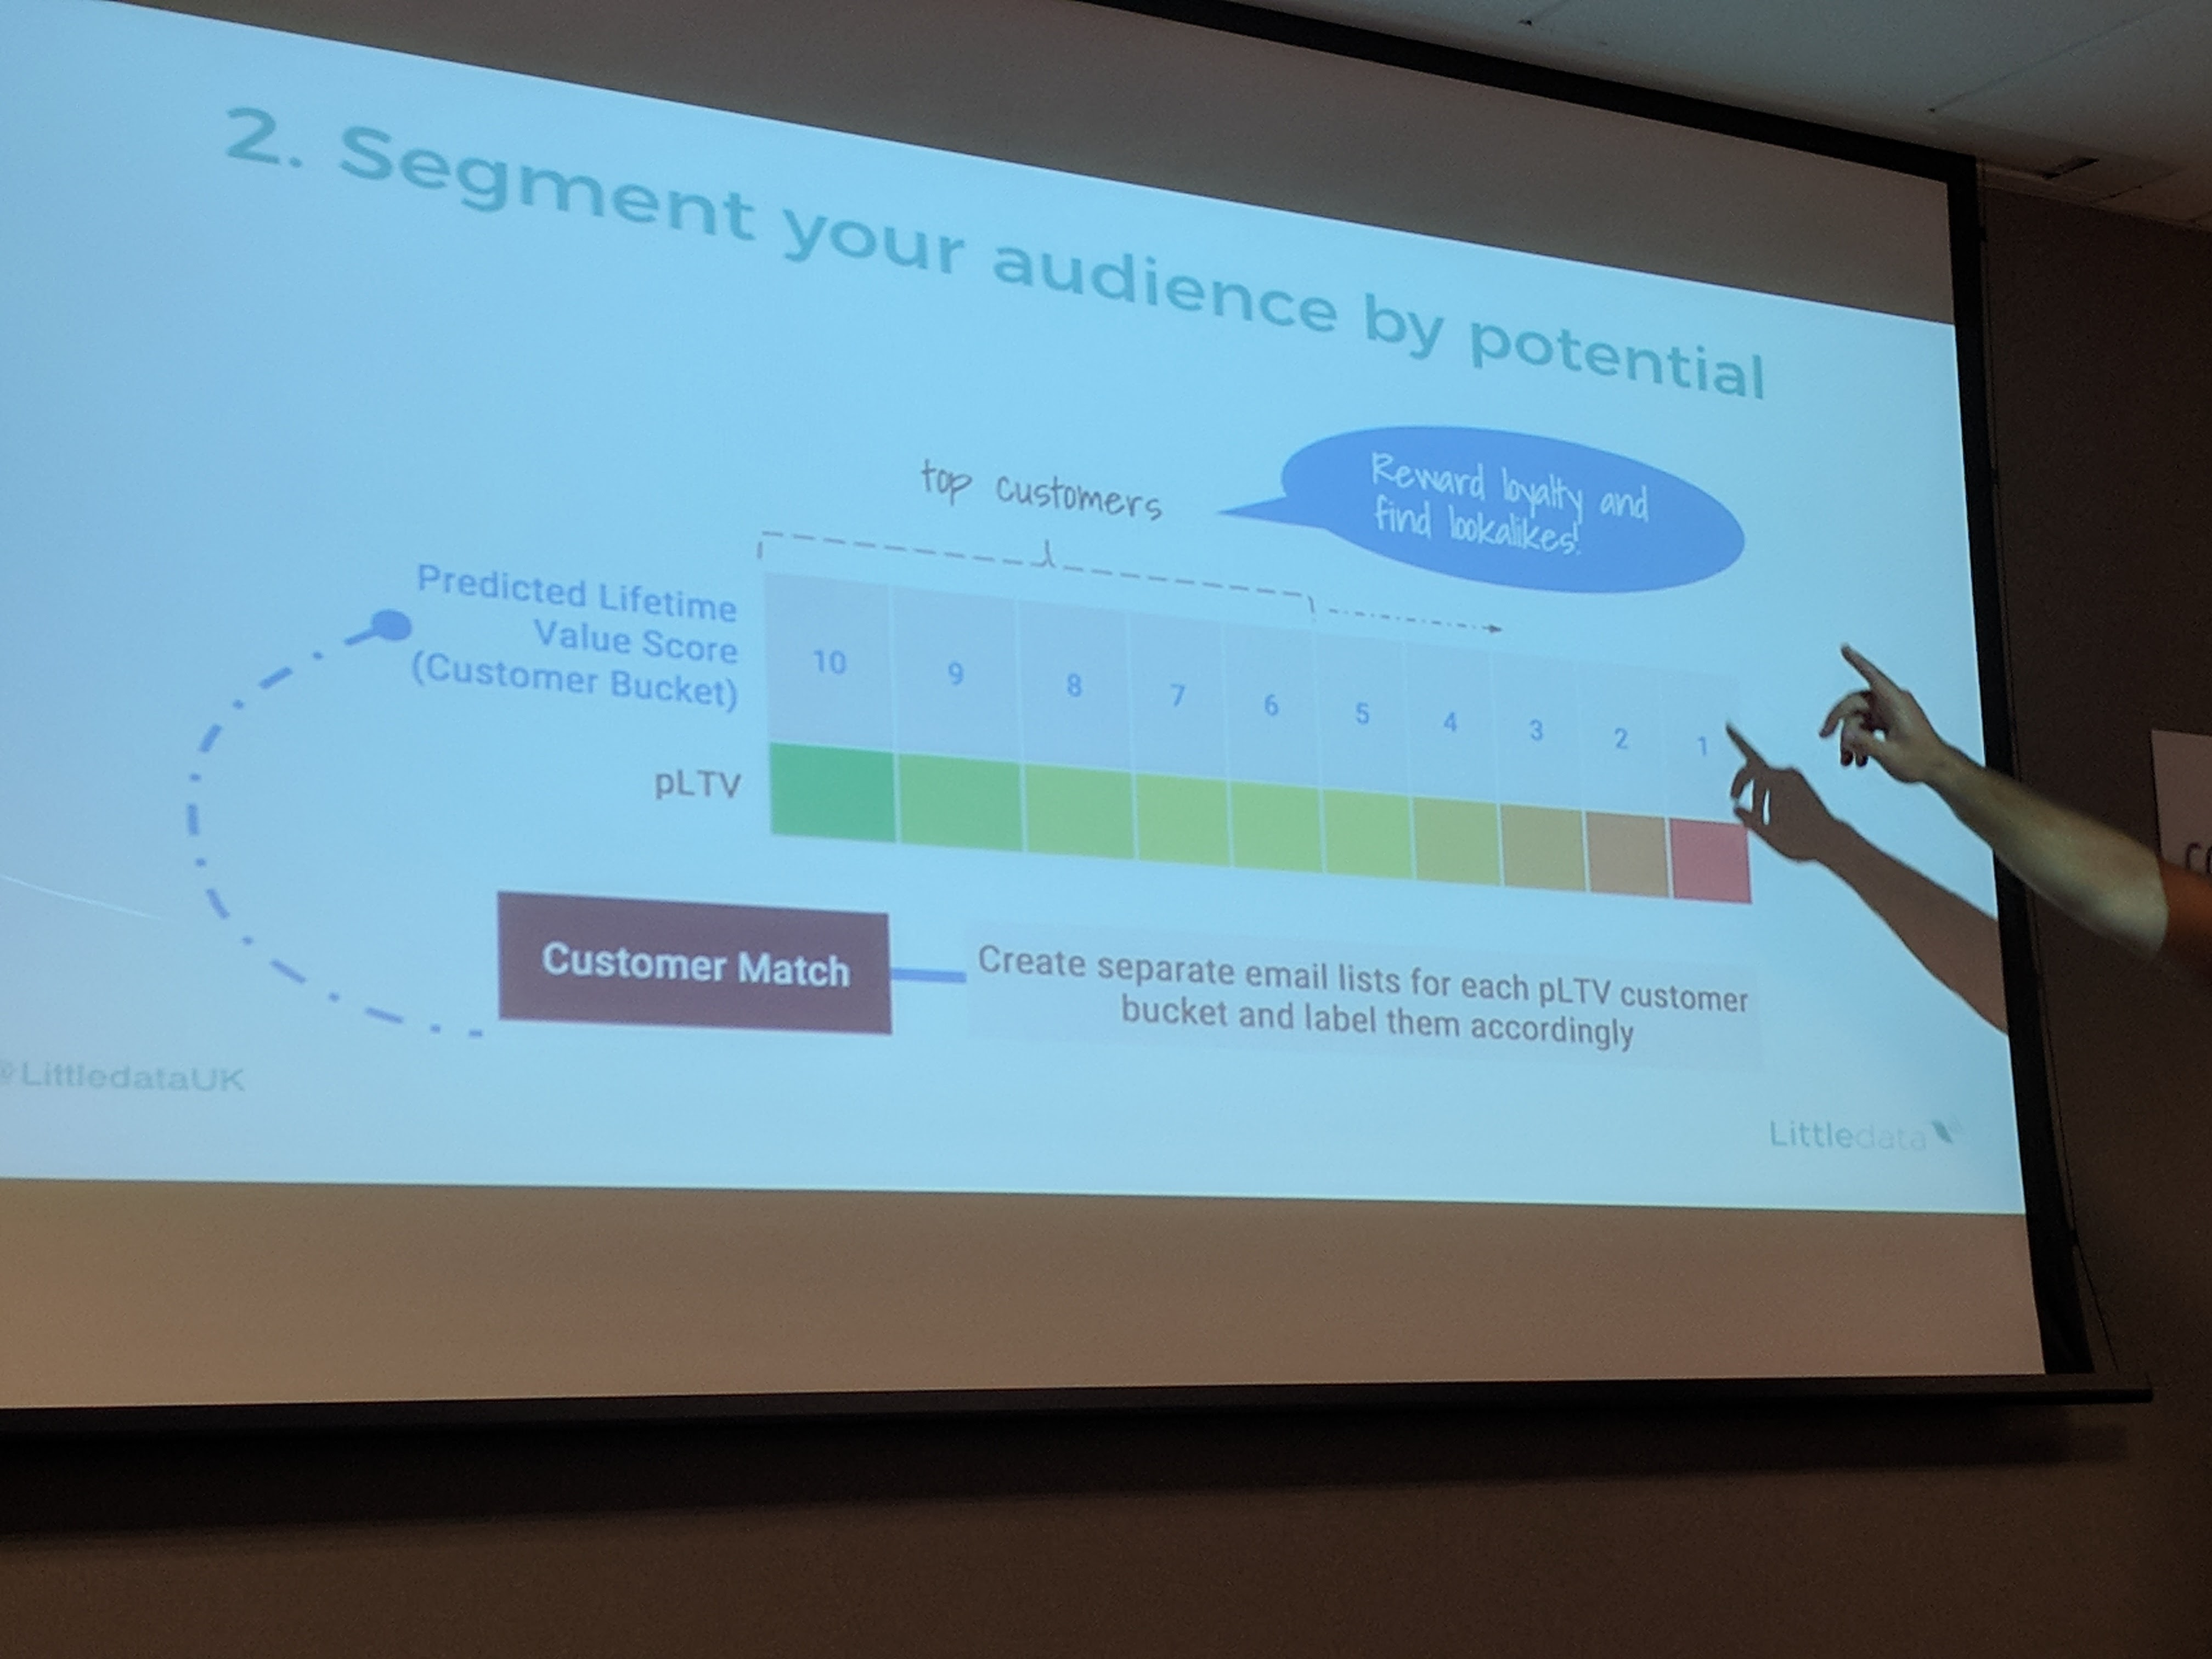 Segment your audience by potential